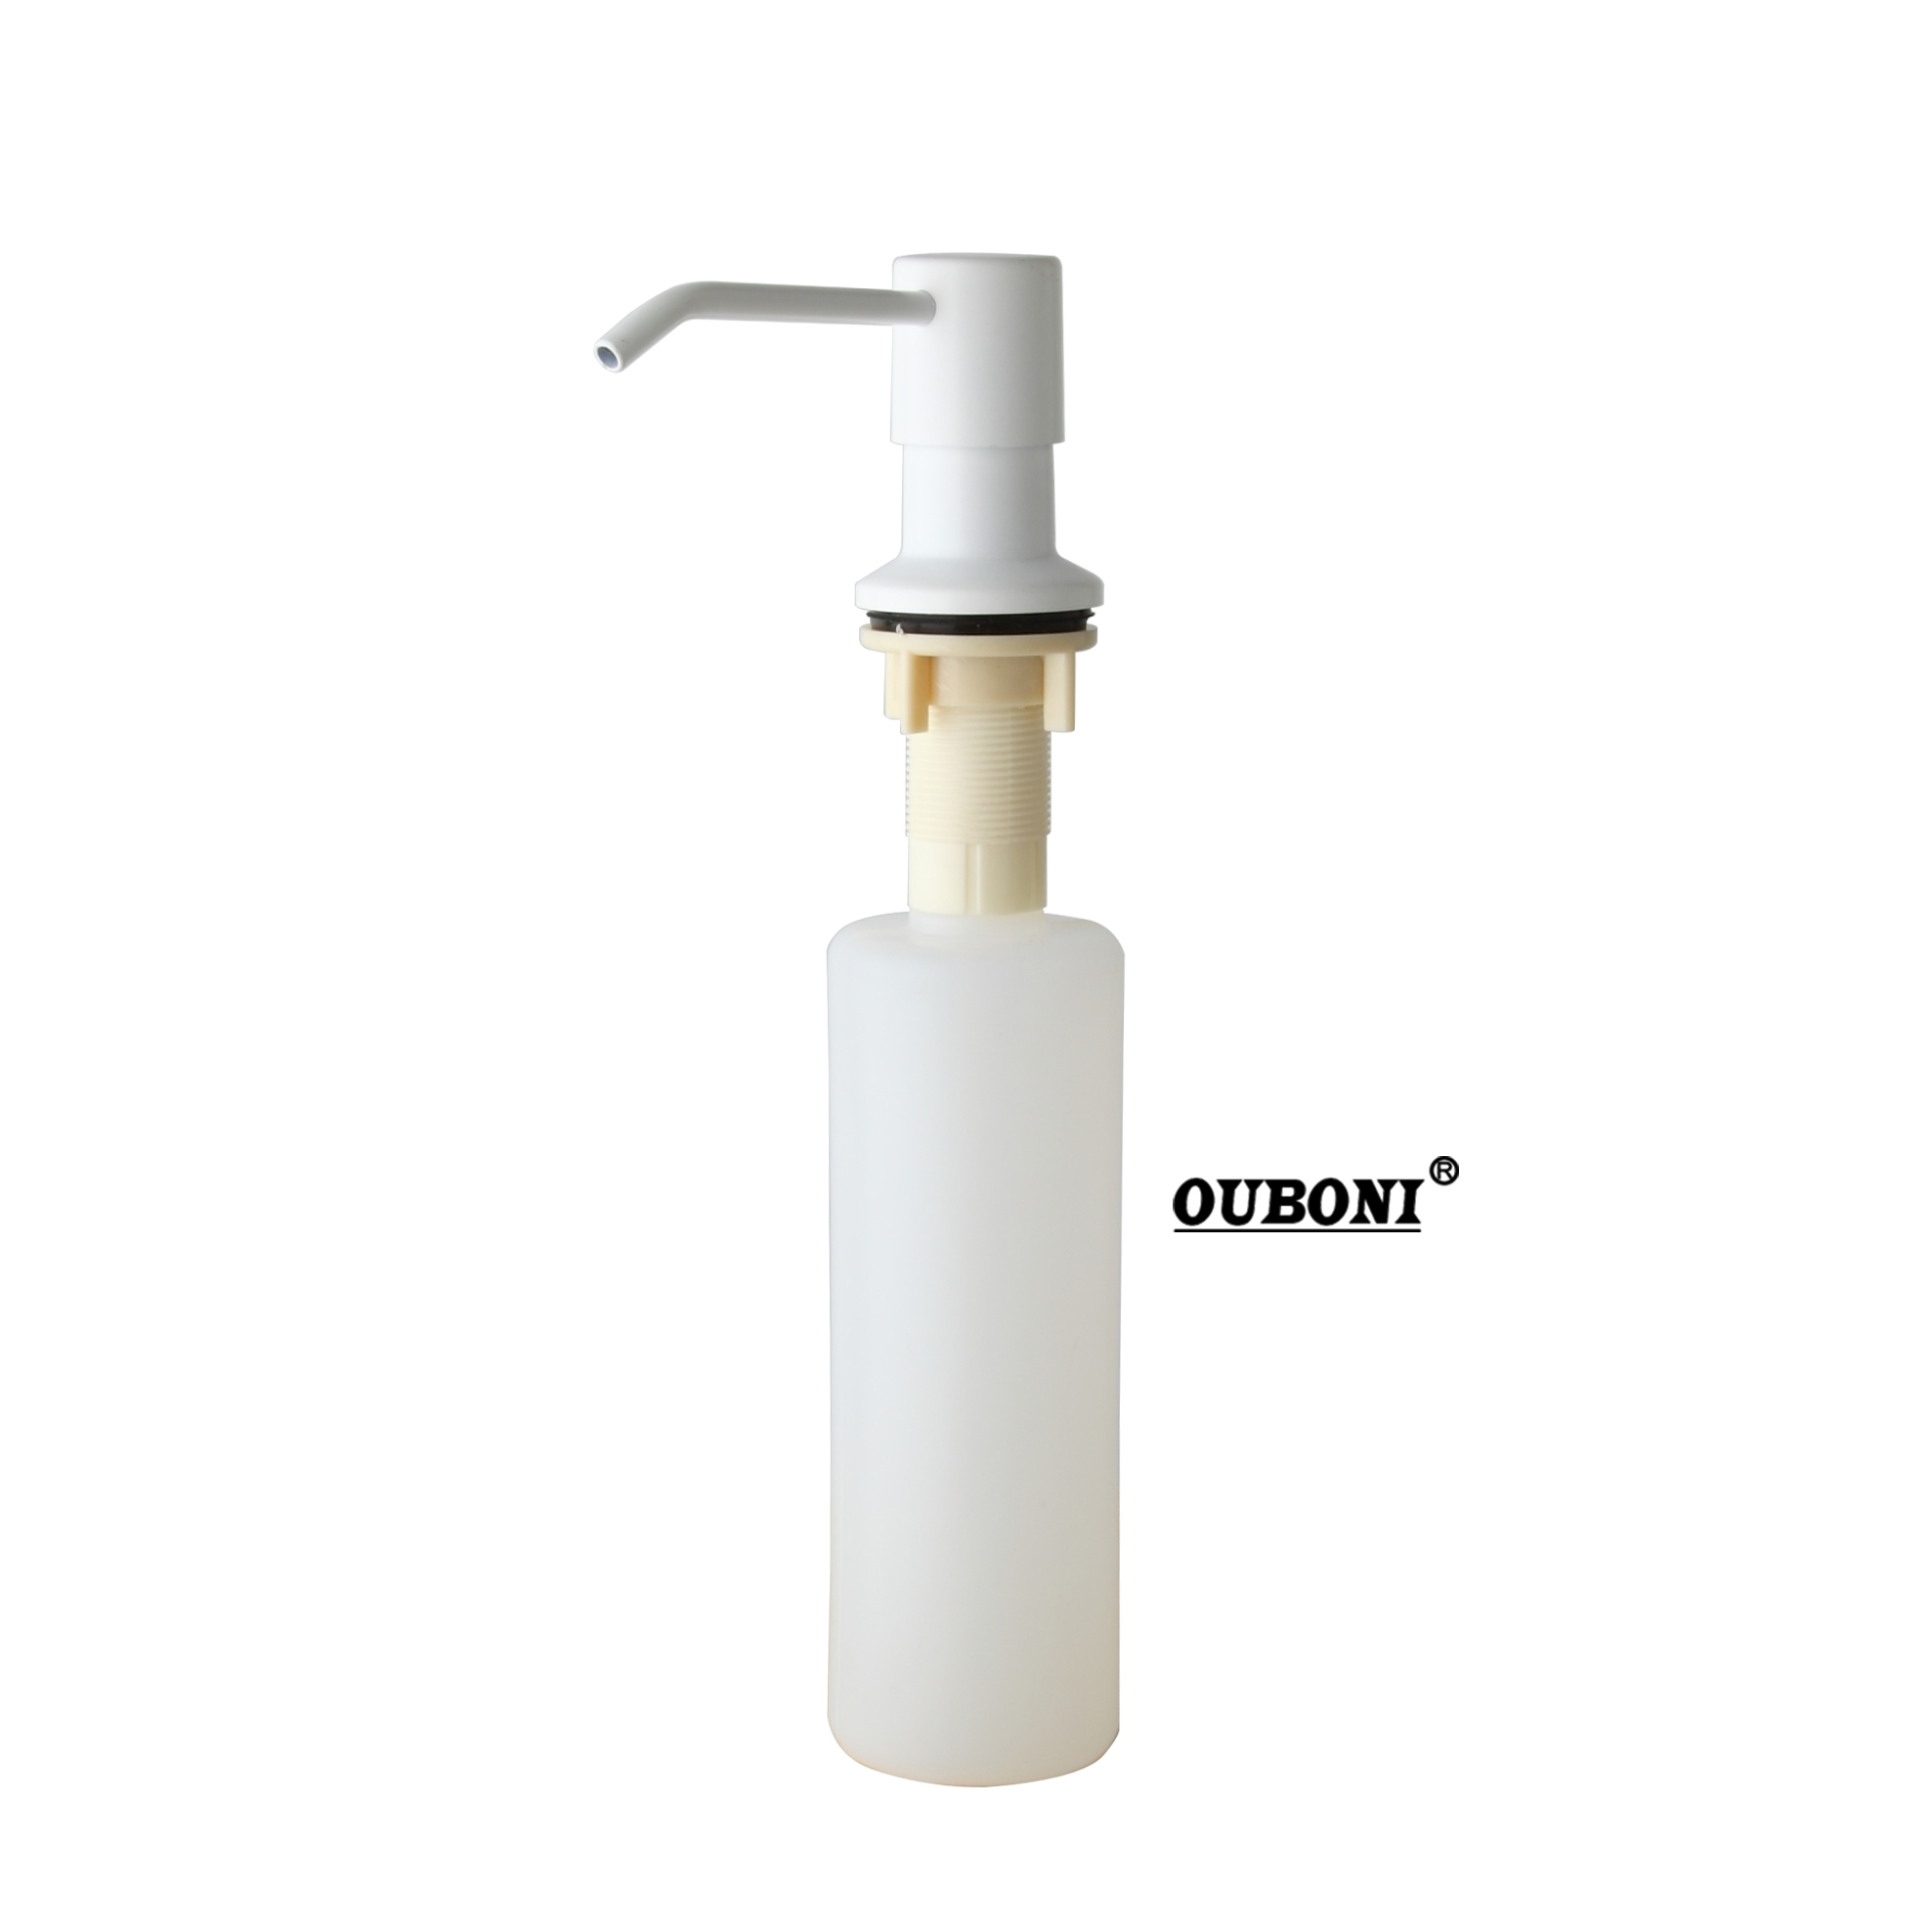 ABS White Painting Soap Dispenser Kitchen Bathroom Sink Faucet Shampoo Shower Lotion New Liquid Soap Dispenser ulgksd bathroom hardware liquid shampoo soap dispenser bathroom ancessories black brass for shower shampoo soap dispenser